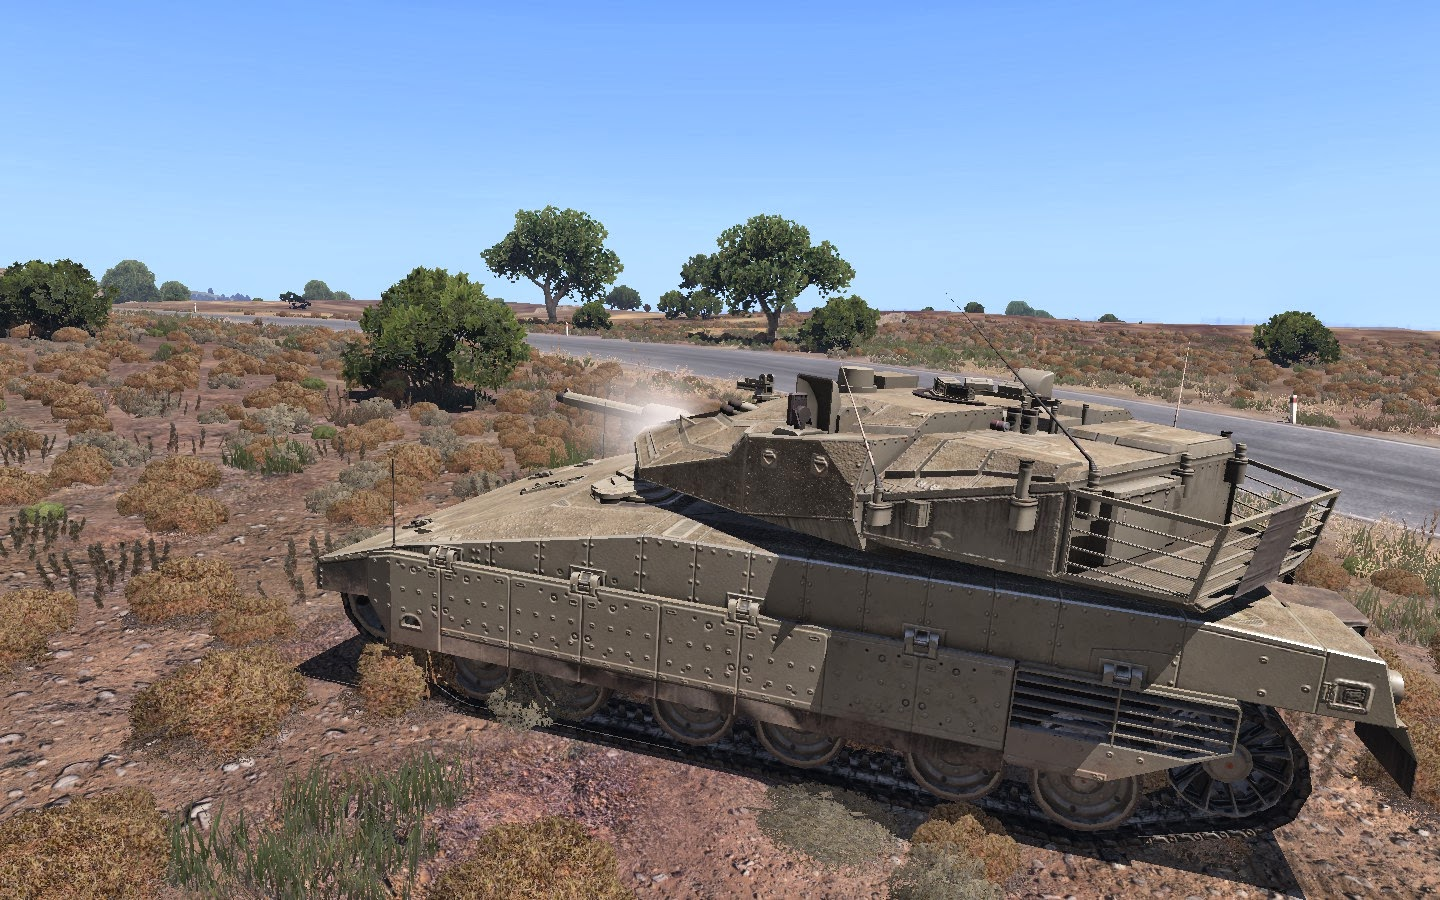 Real And Simulated Wars Arma 3 The Slammer Tank Ultimate Merkava Schematic A Great Hull Down Position Barking Of Coaxial Gun